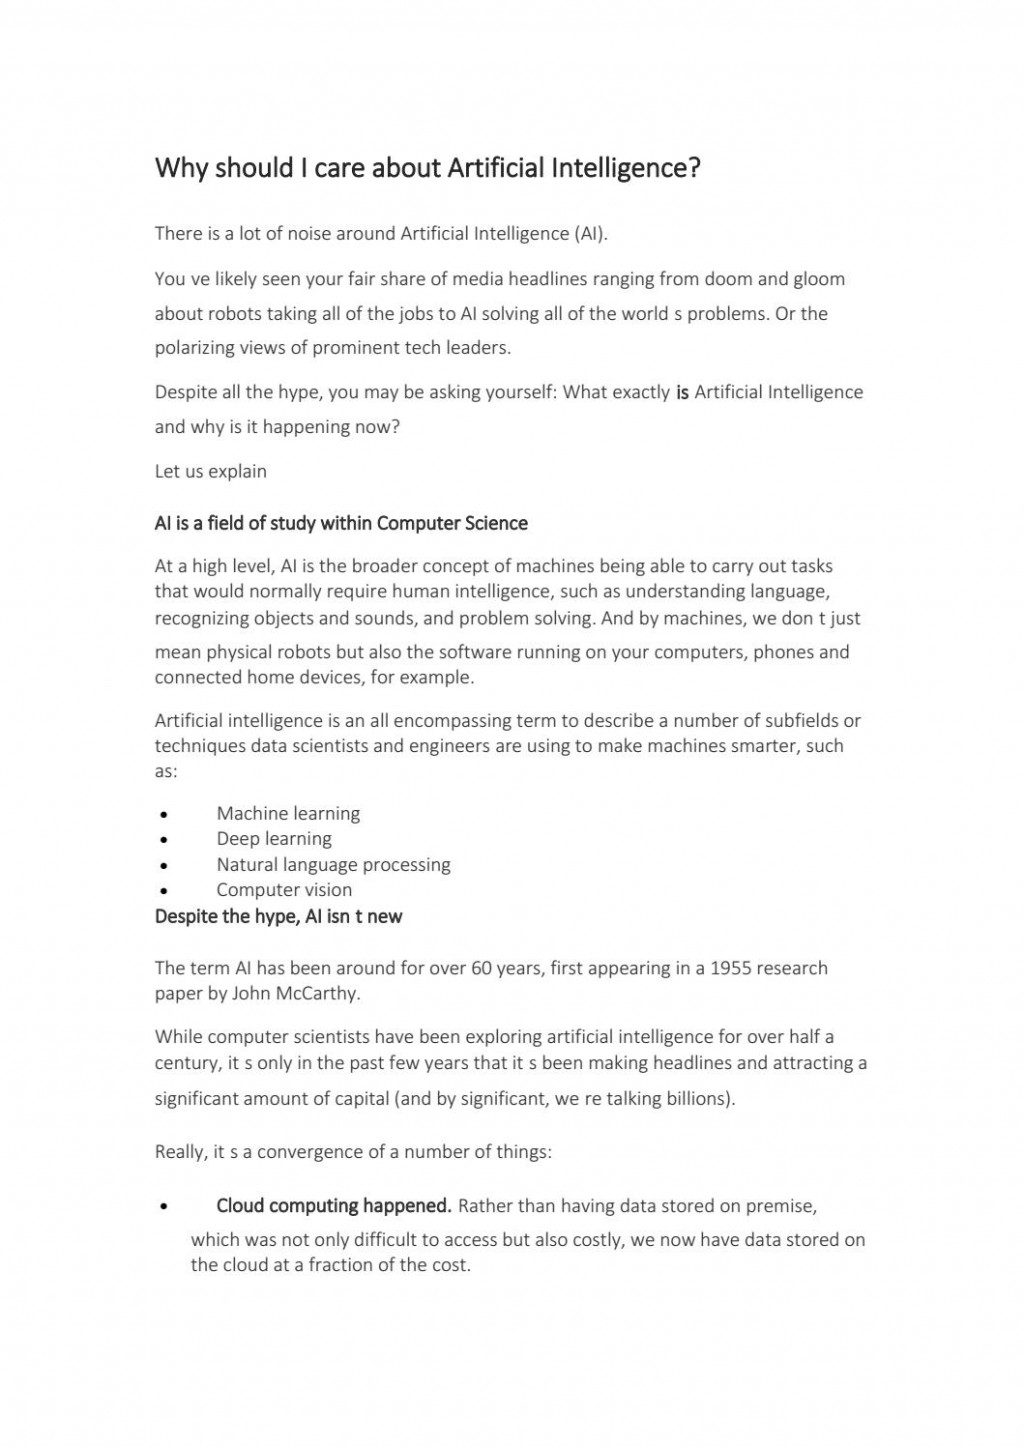 008 Page 1 Artificial Intelligence Research Paper Stirring Example Large